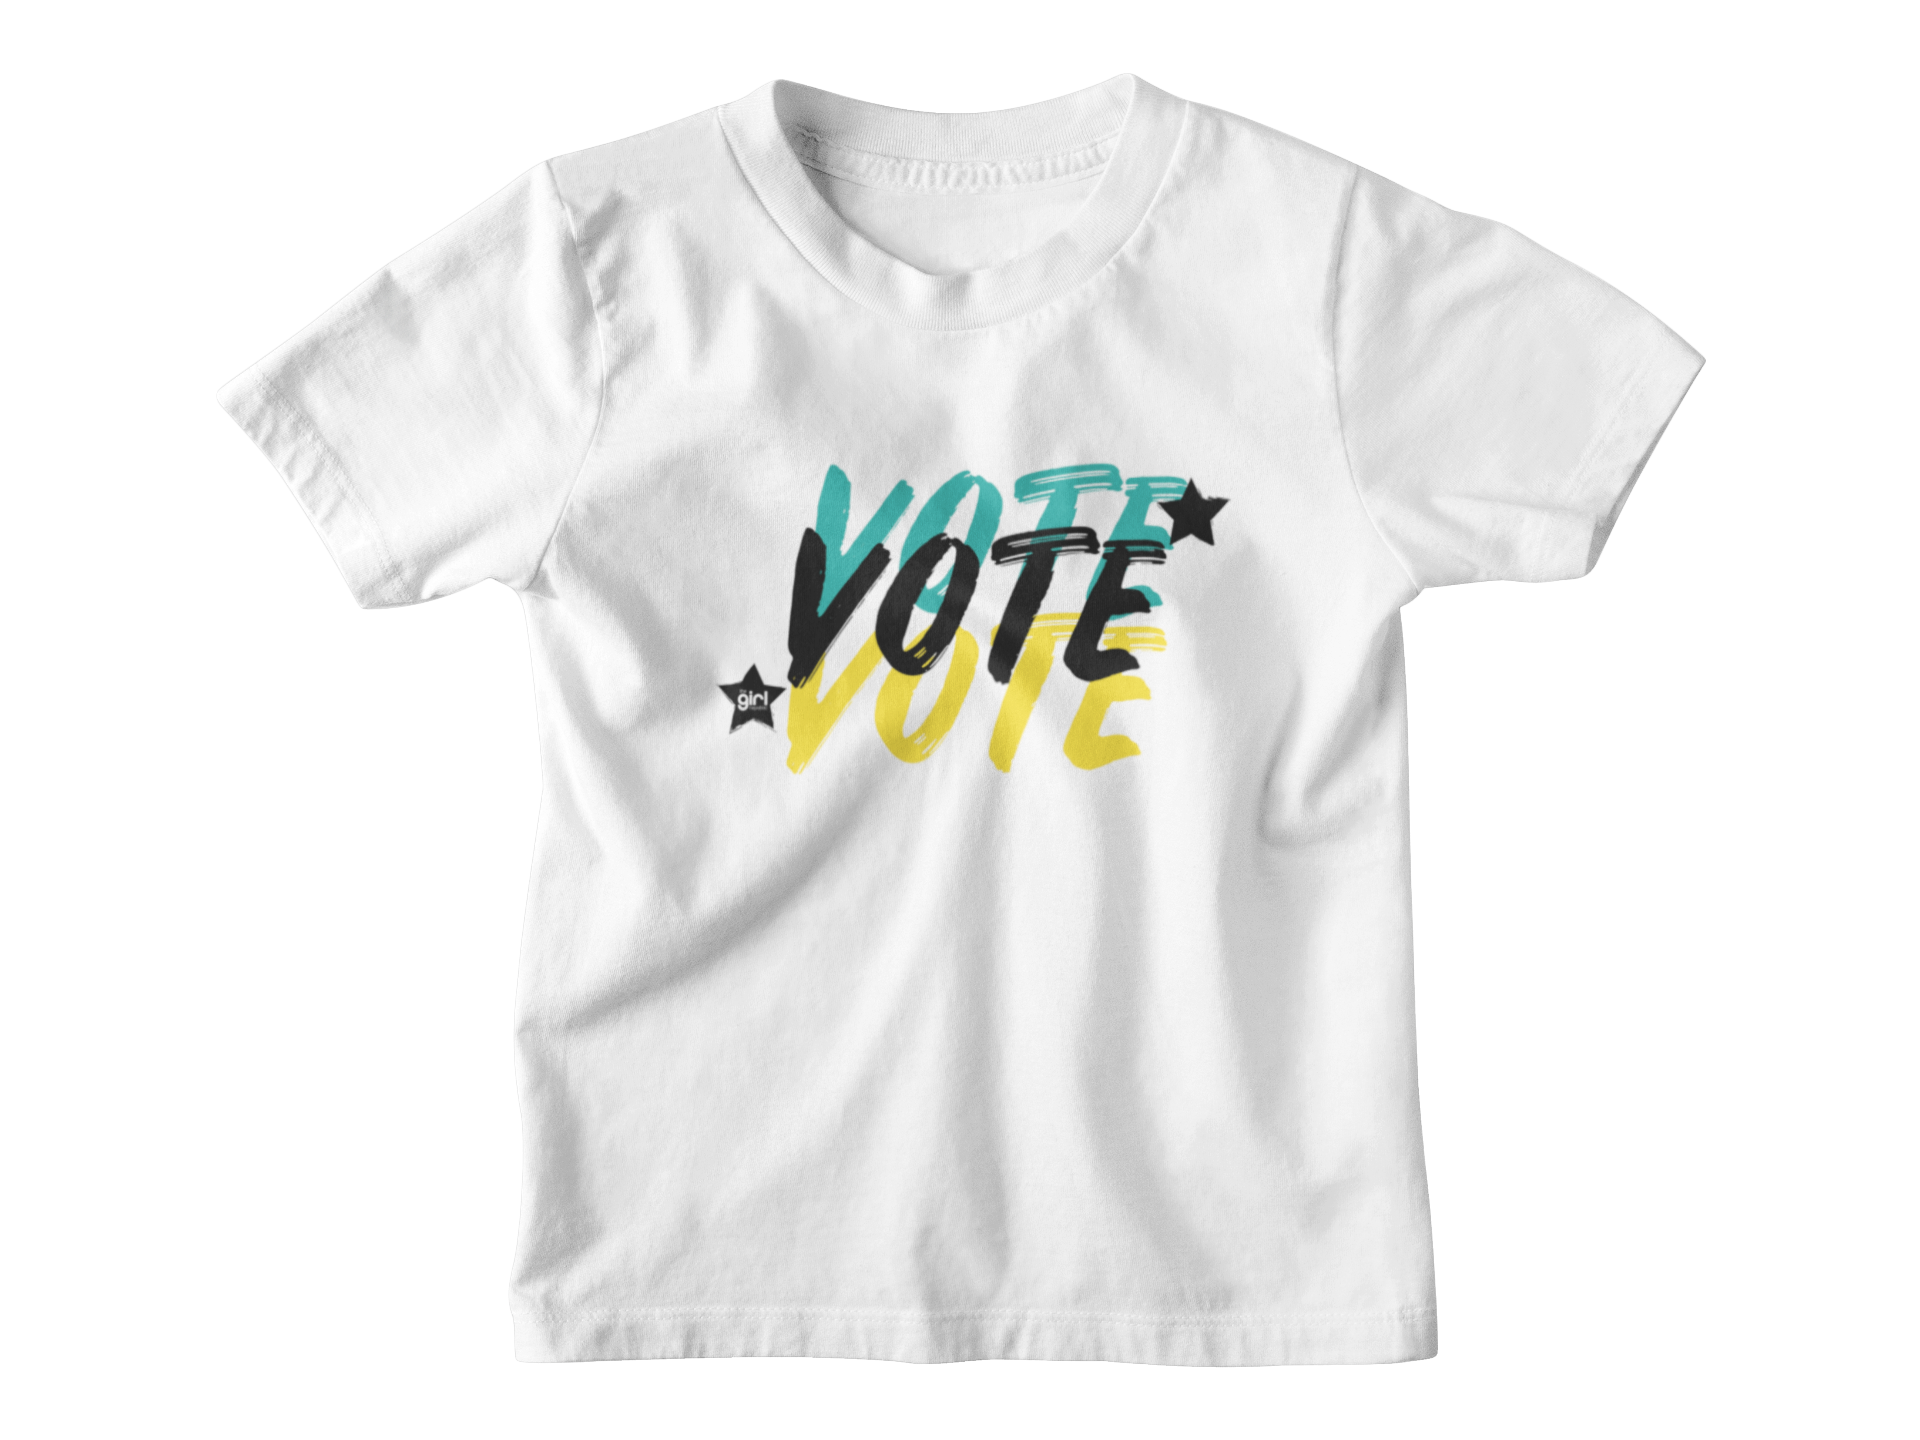 Vote (Youth)